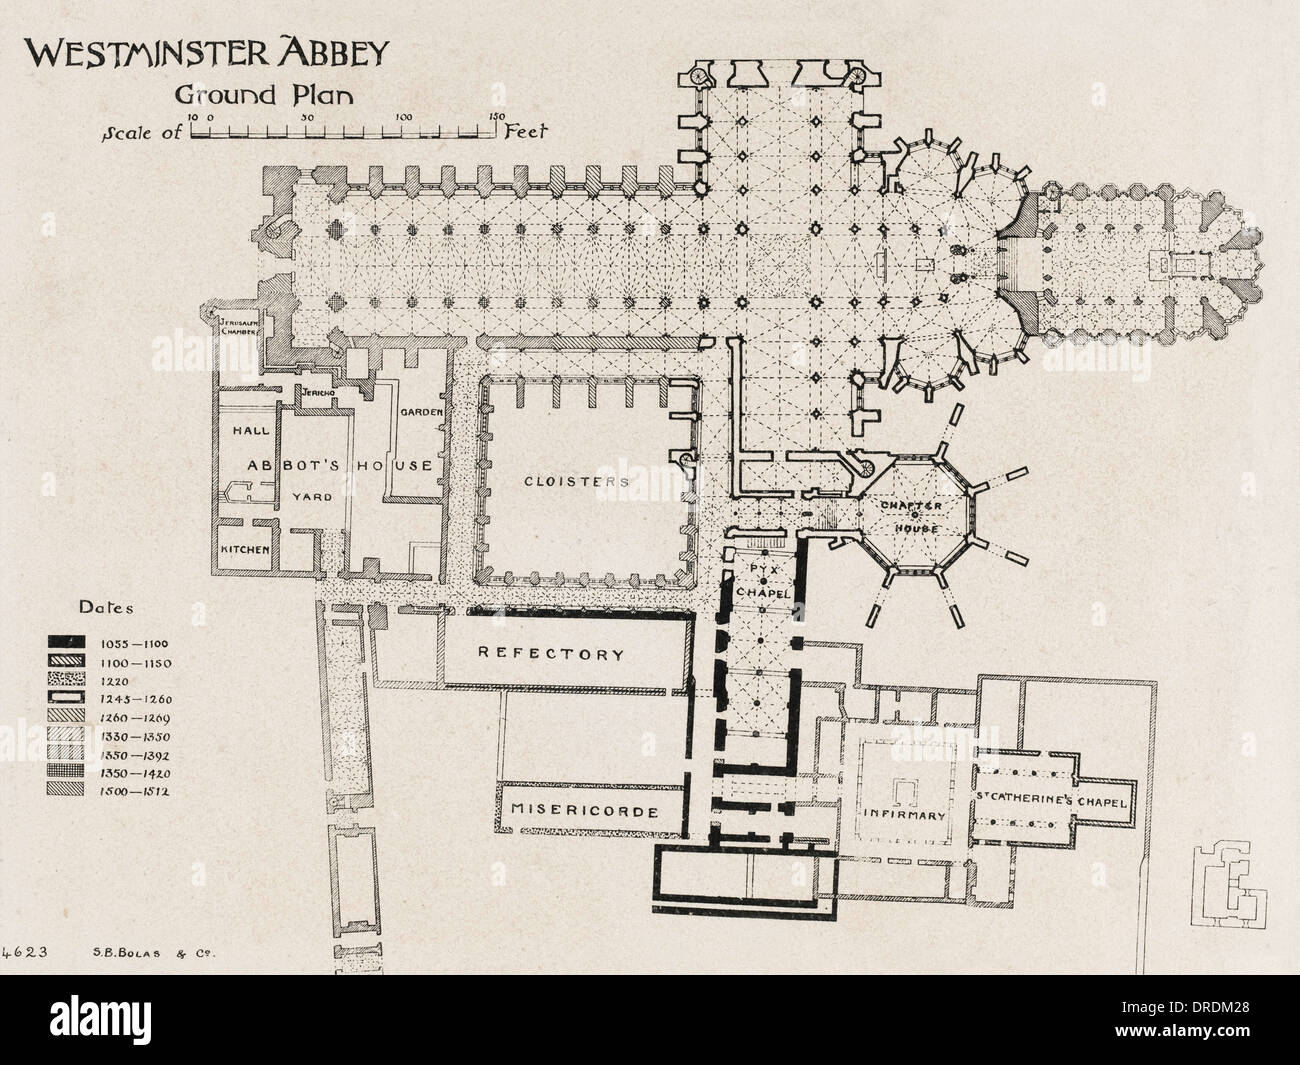 Ground Plan Of Westminster Abbey Stock Photo, Royalty Free